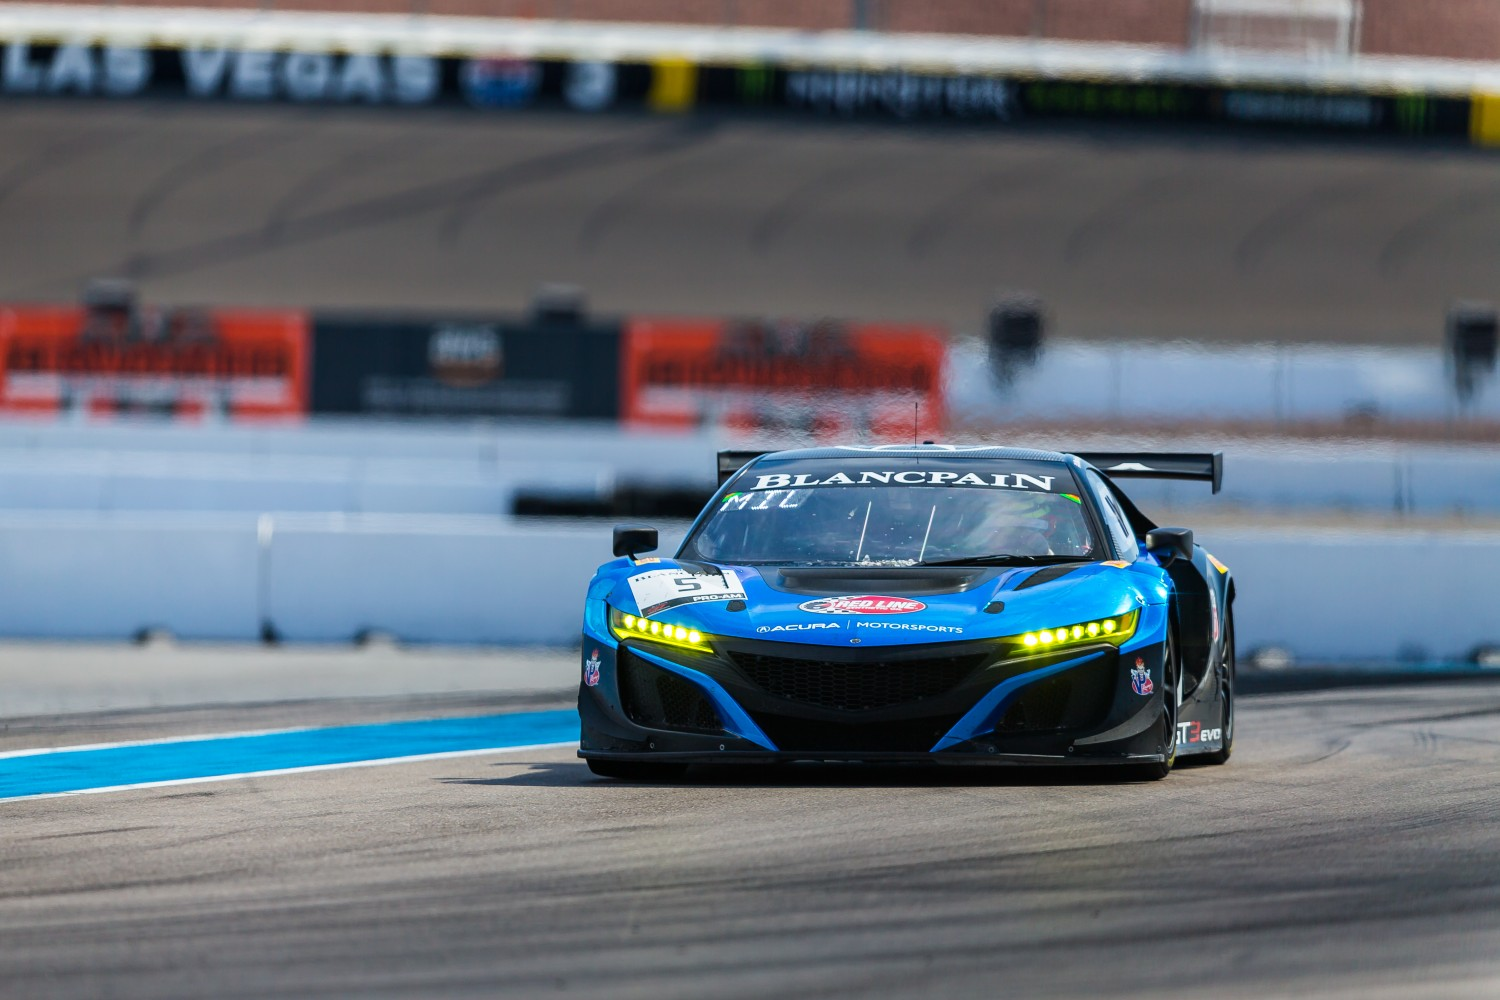 #5 Acura NSX of Till Bechtolsheimer and Marc Miller with Gradient Racing  2019 Blancpain GT World Challenge America - Las Vegas, Las Vegas NV | Fabian Lagunas/SRO